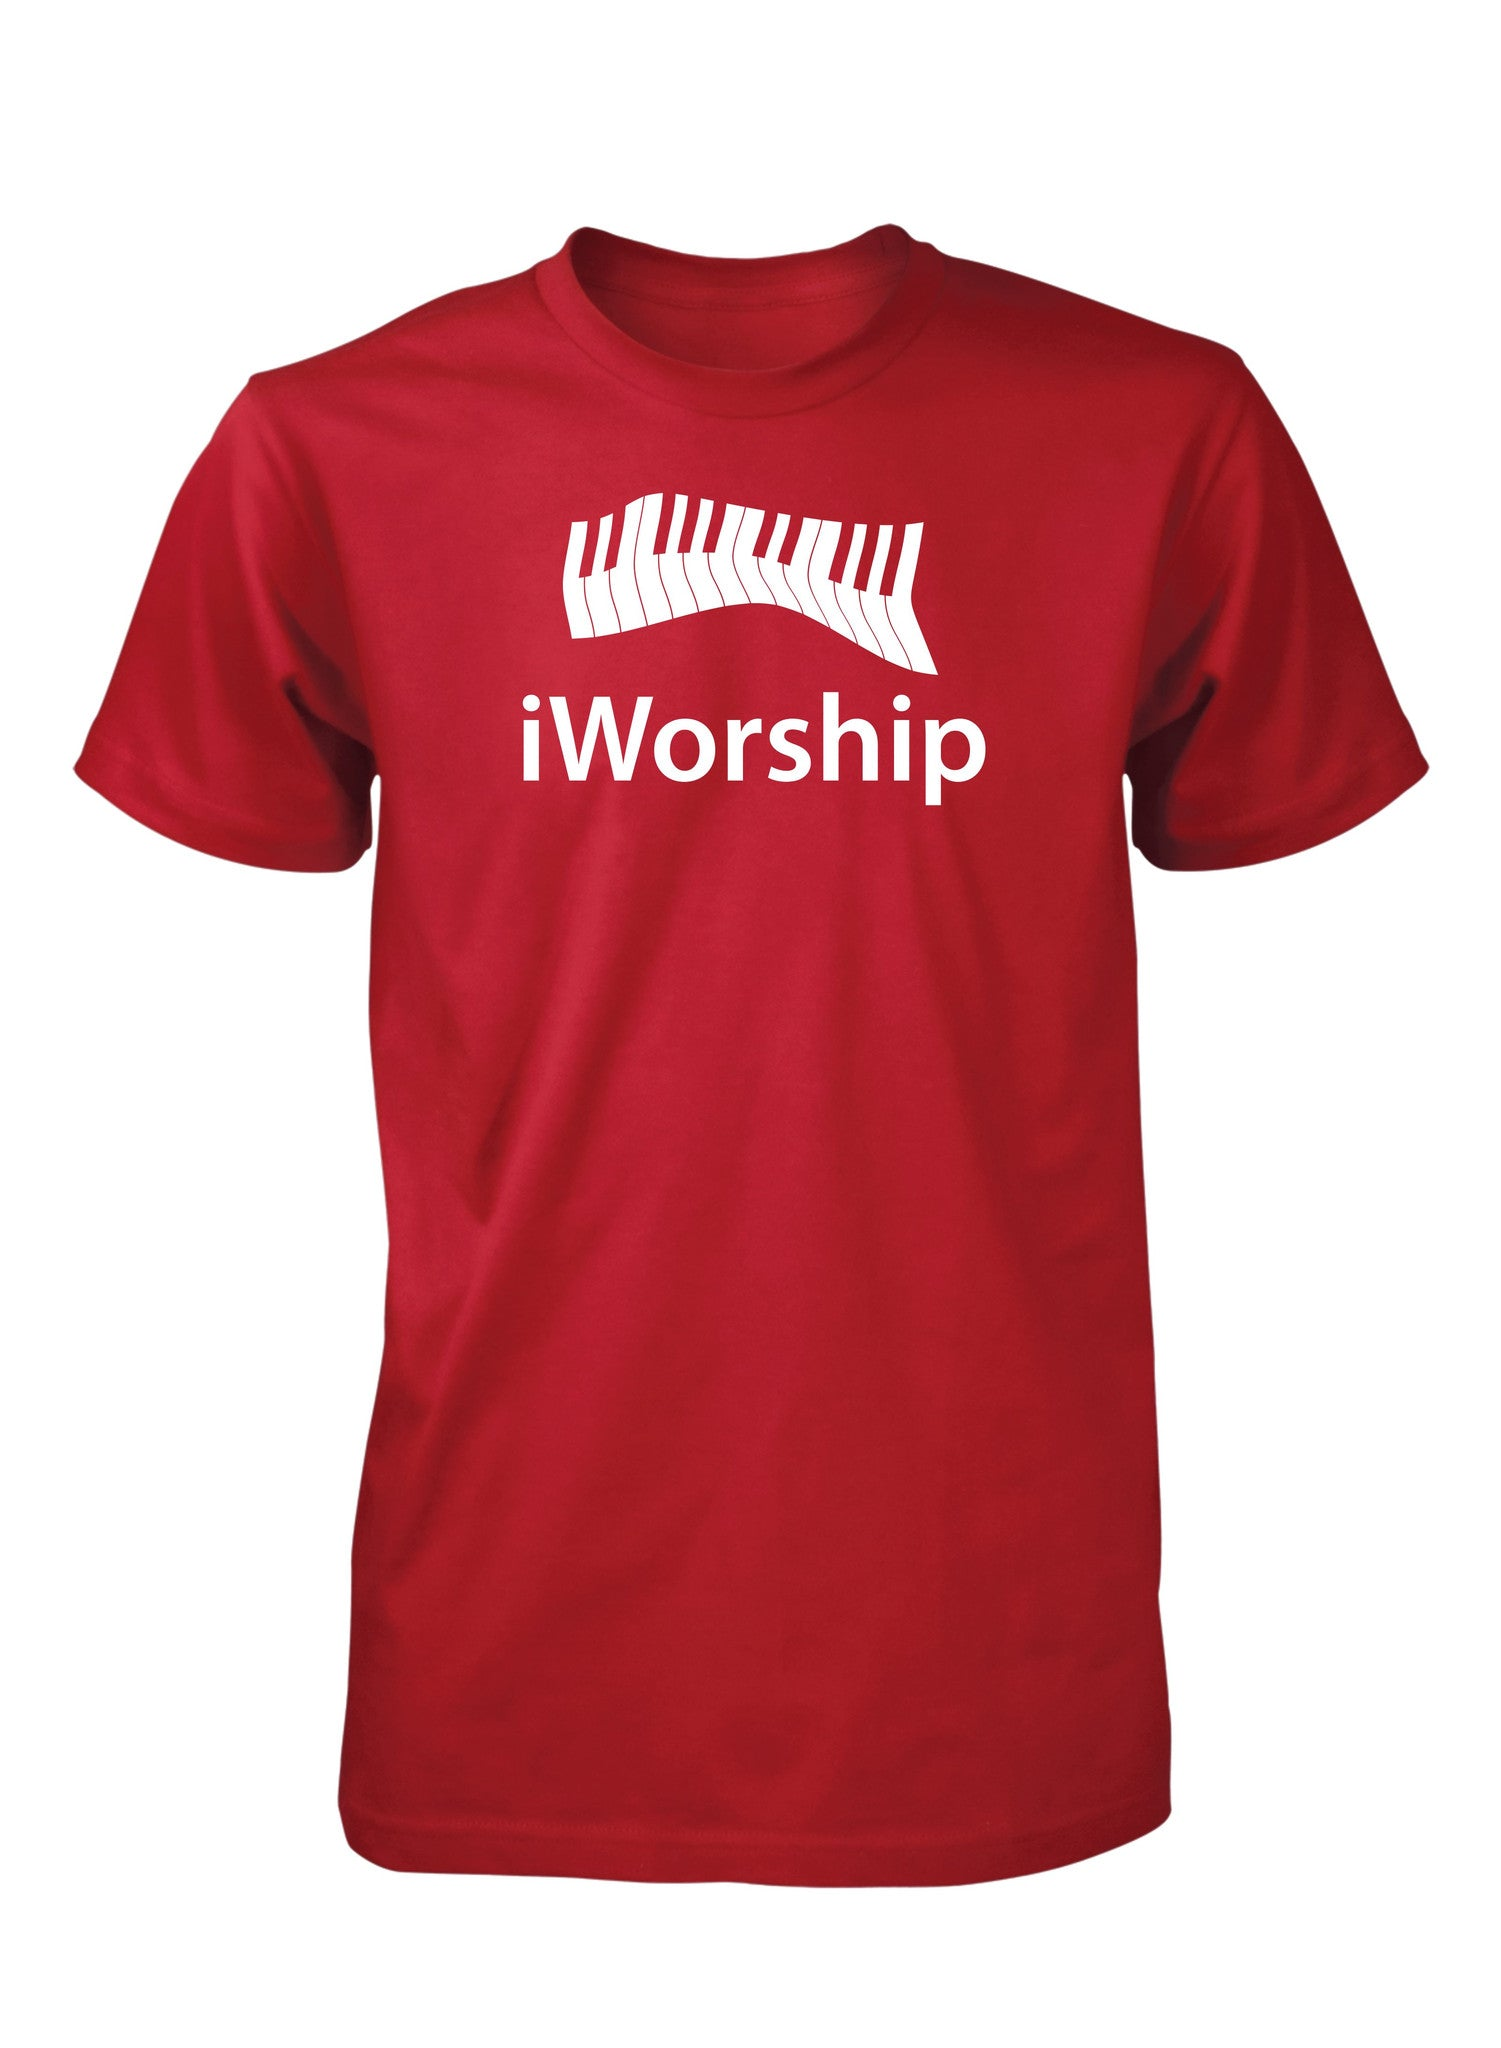 iWorship Praise God Keyboard Piano Keys Music Christian Tshirt for Men